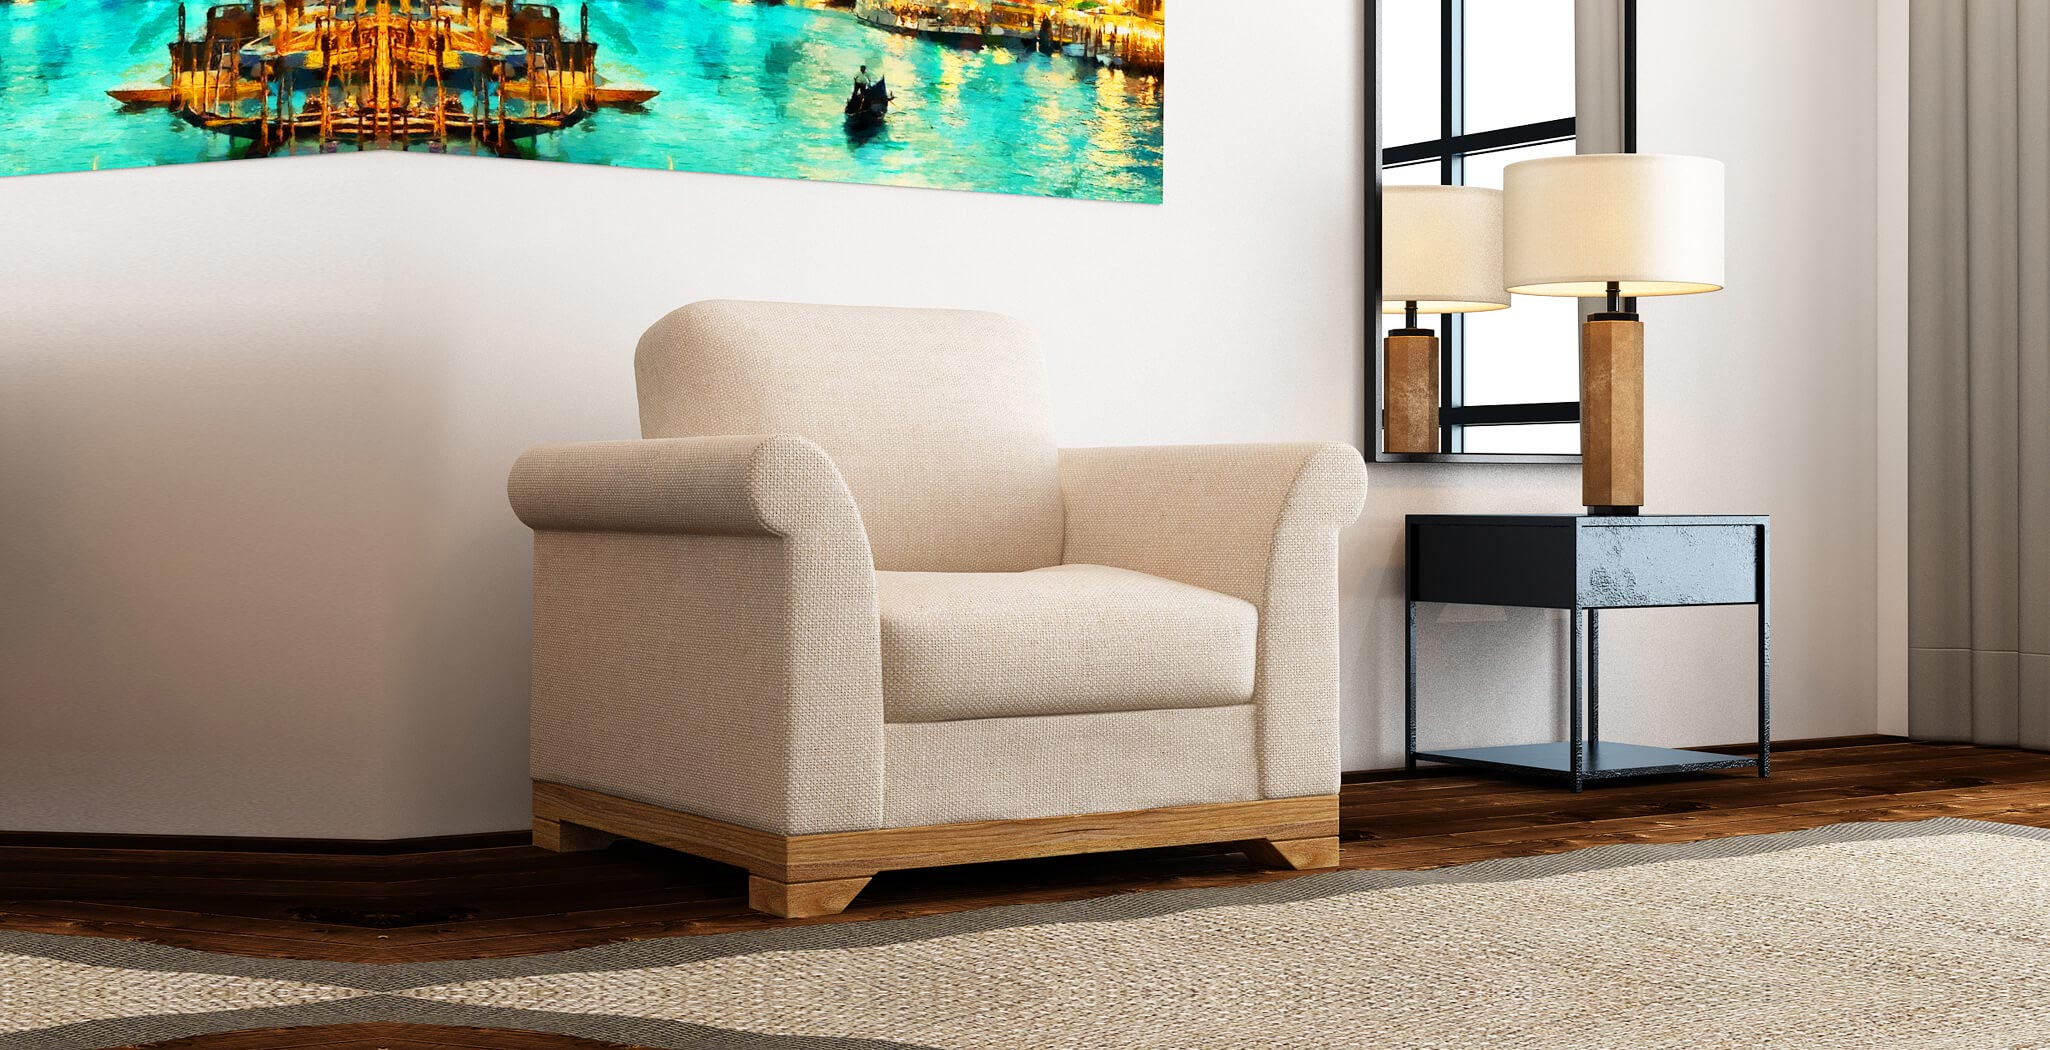 denver chair premium furiture DreamSofa